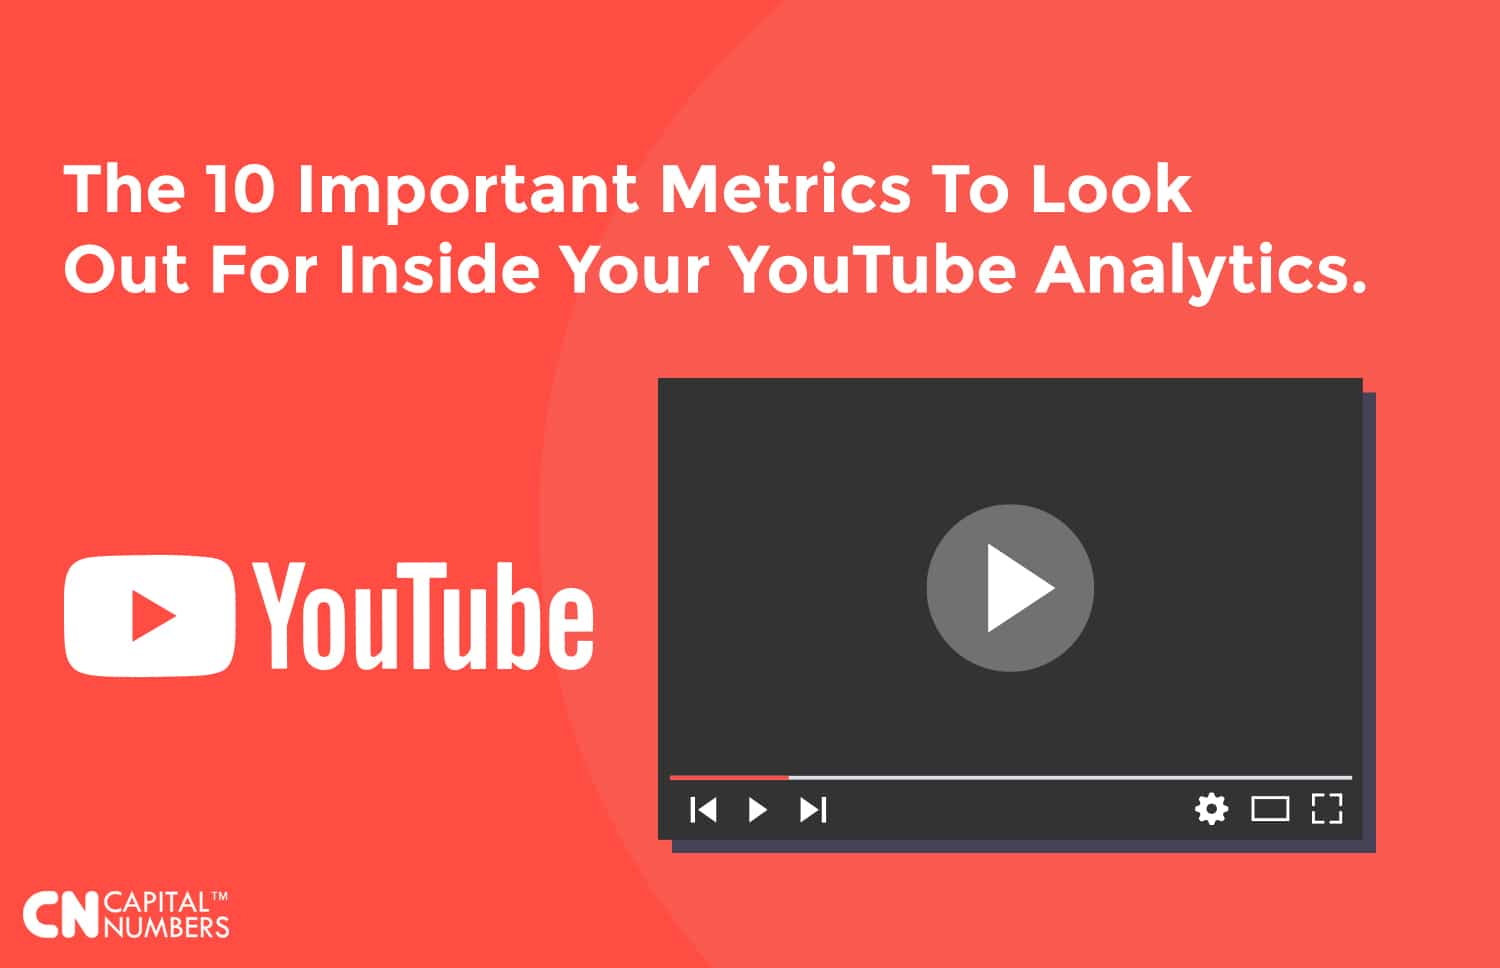 Ten Important Metrics To Look Out For Inside Your YouTube